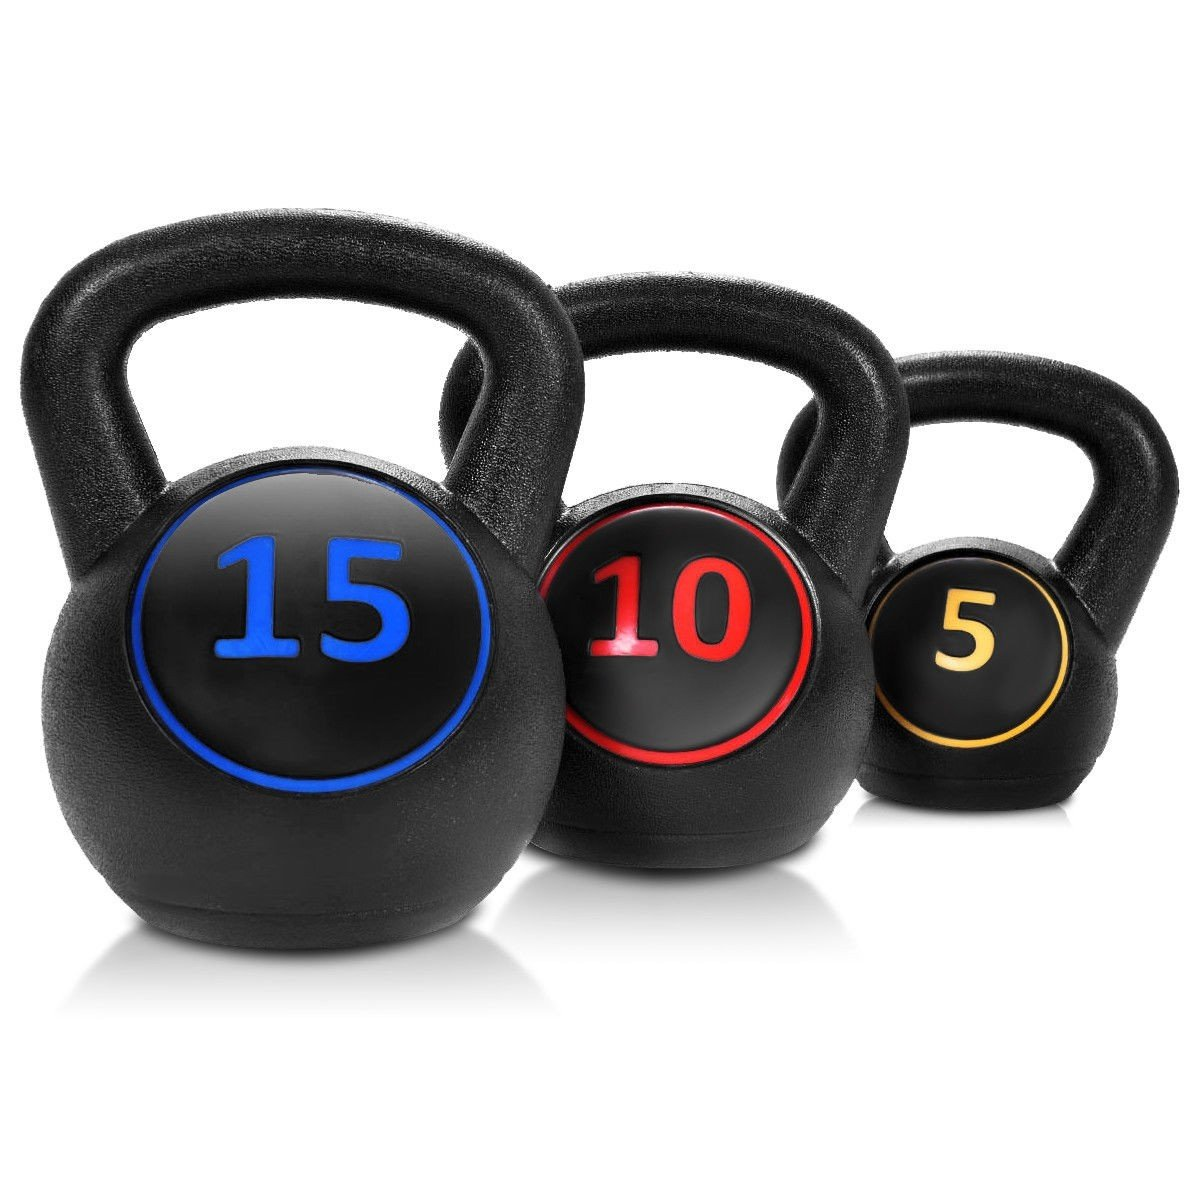 MD Group 3 pcs 5 10 15lbs Kettlebell Kettle Bell Weight Set by MD Group (Image #1)